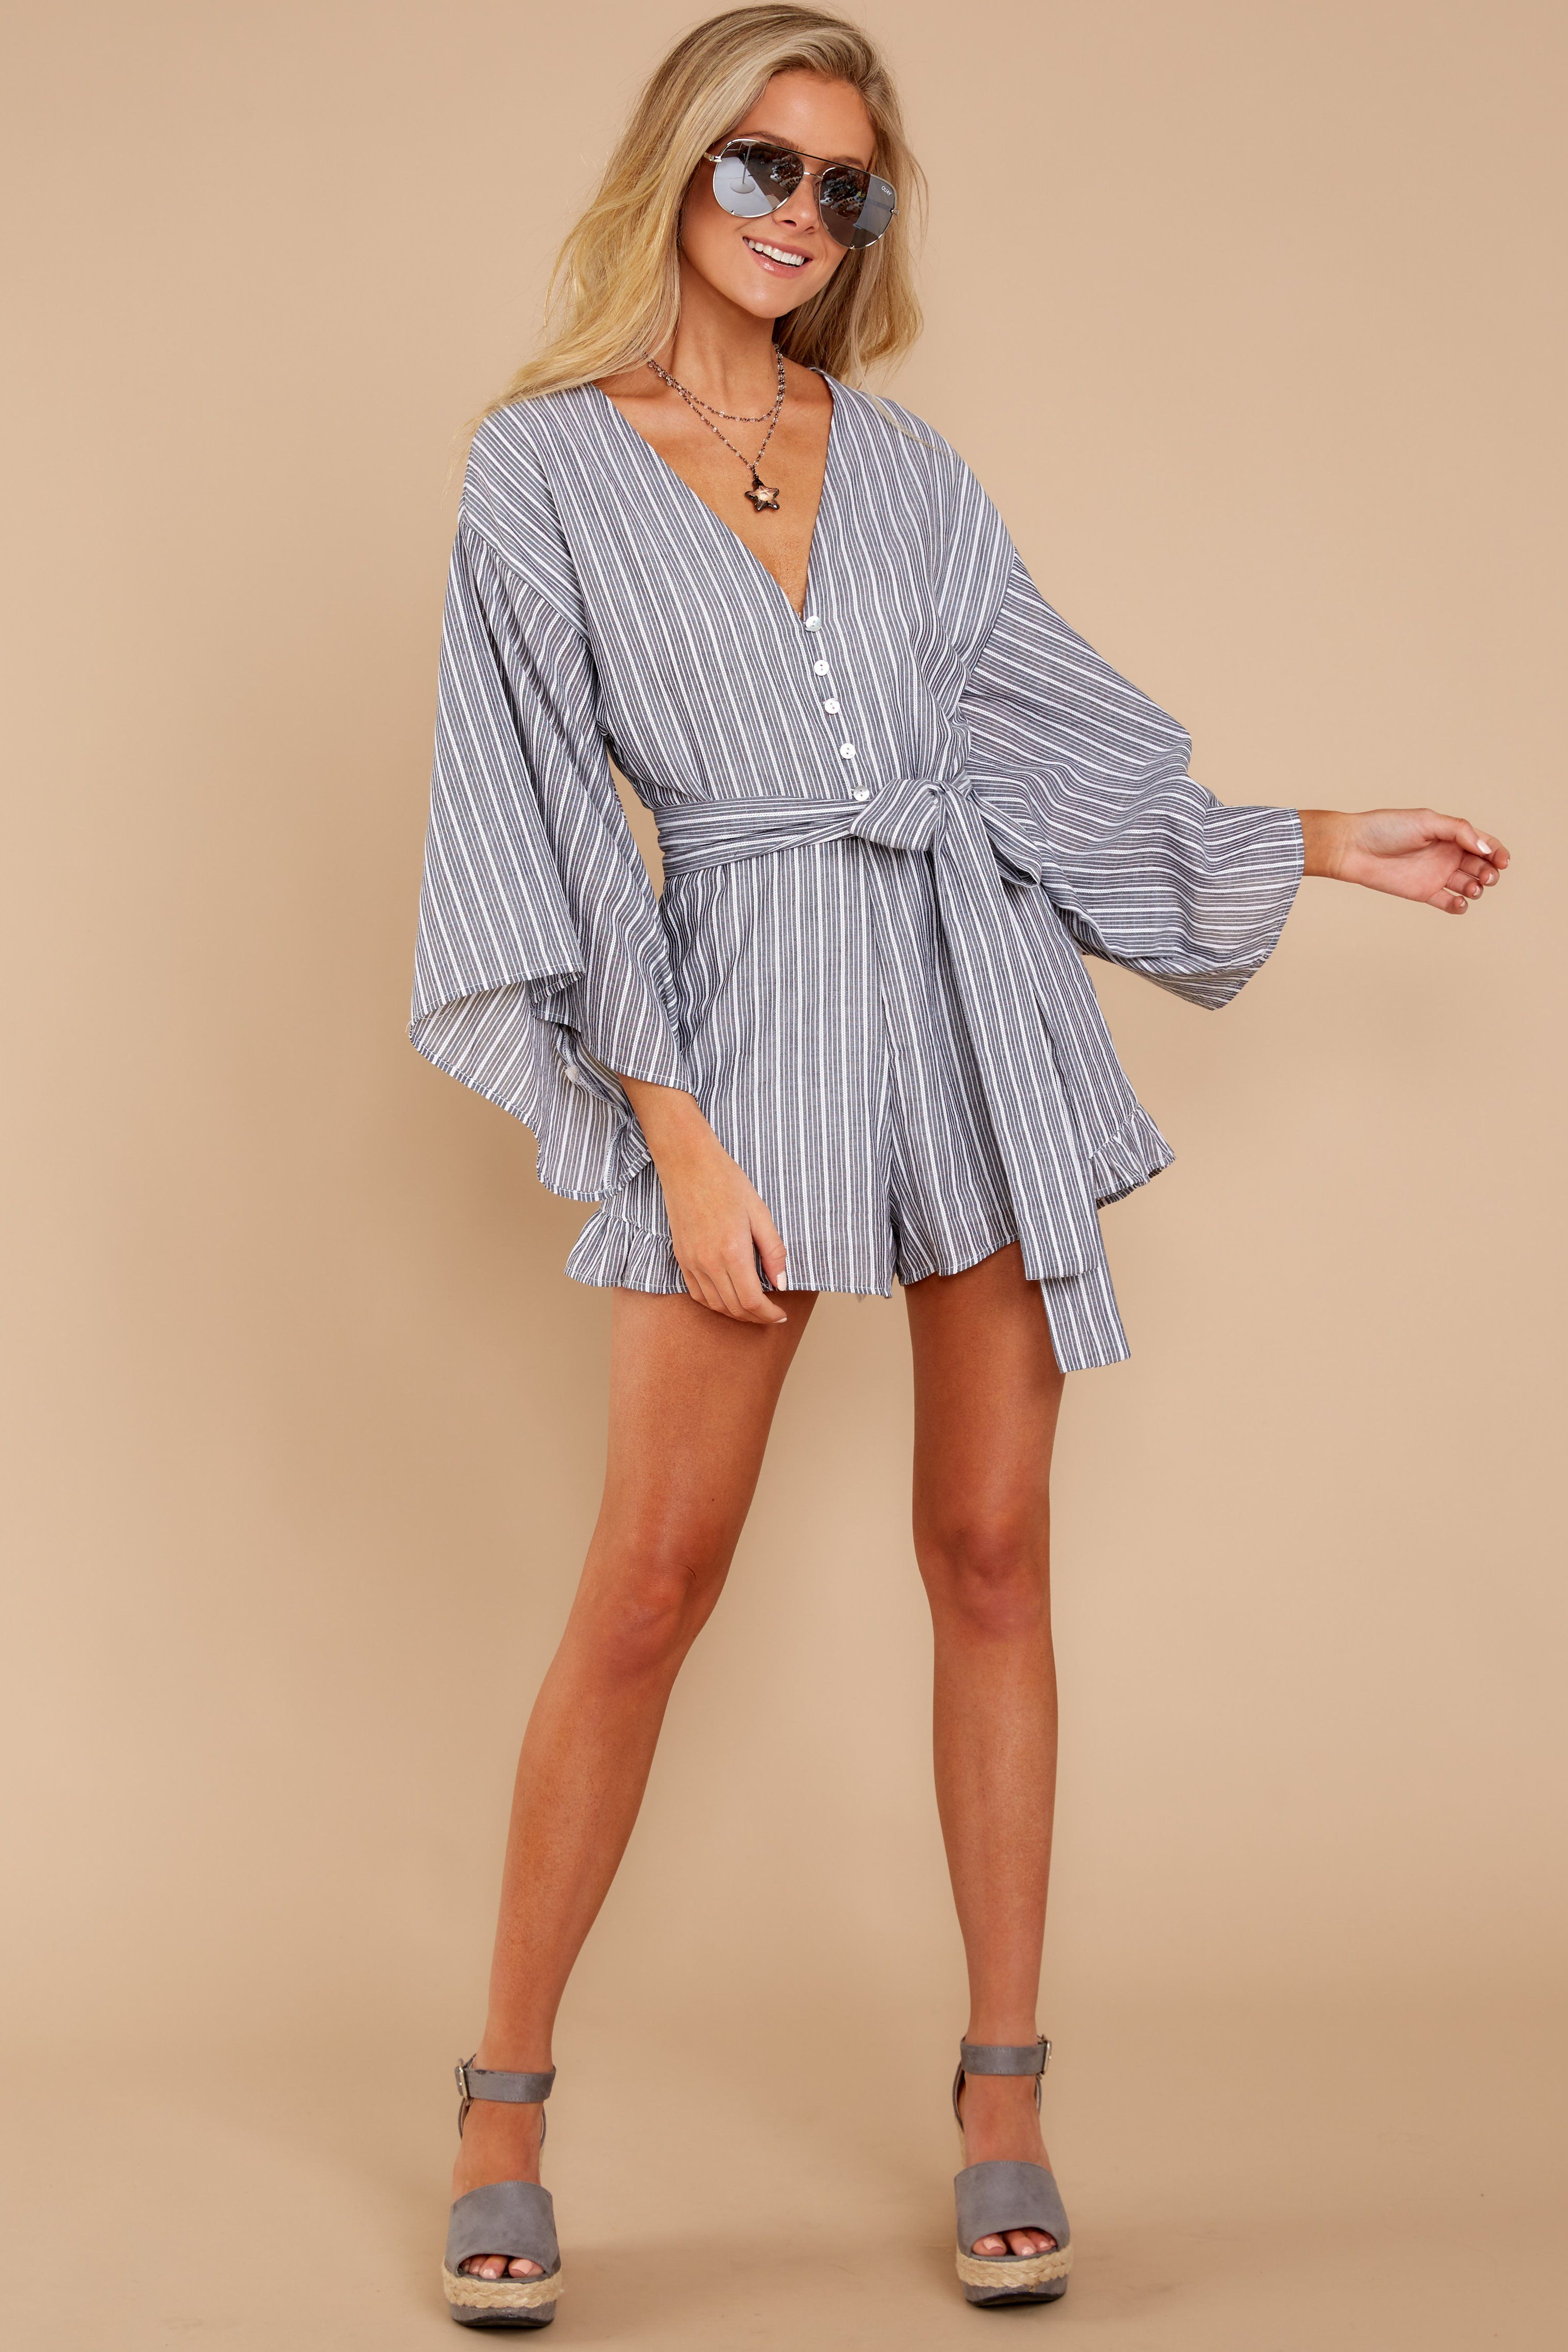 Stylish cute rompers